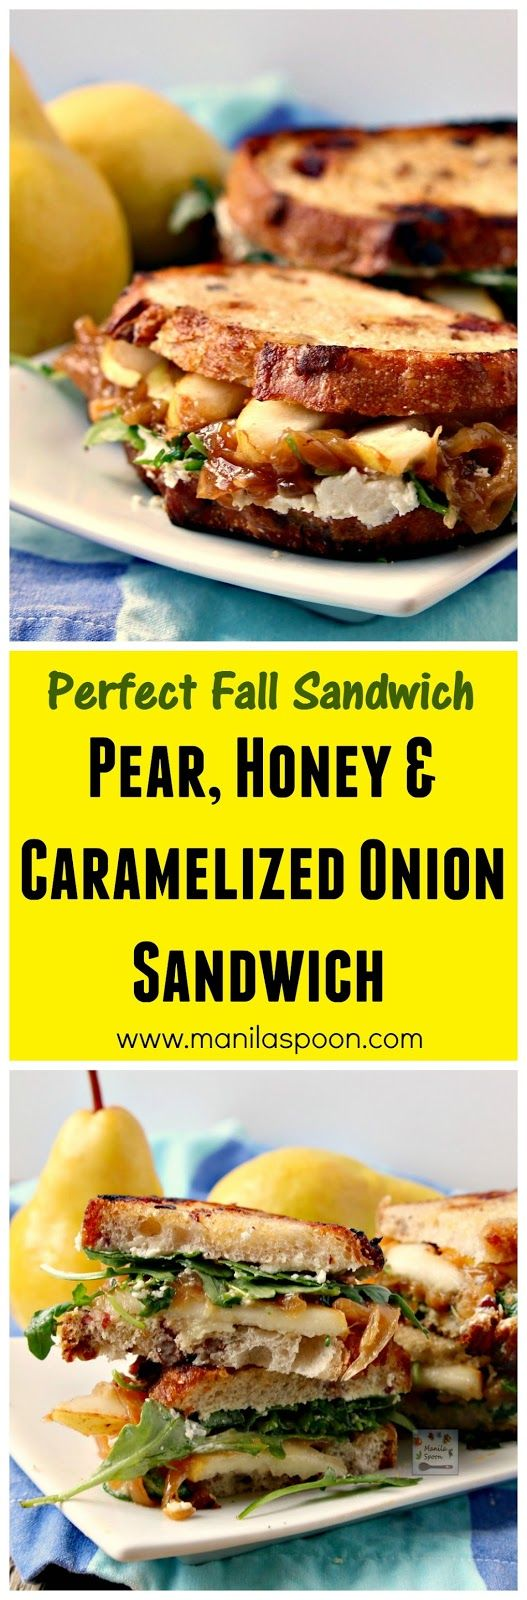 A burst of flavors - fruity sweet, cheesy, herby and buttery yum greet your taste buds with each bite of this delicious Fall sandwich - Pear, Honey, Cheese and Caramelized Onion Sandwiches!